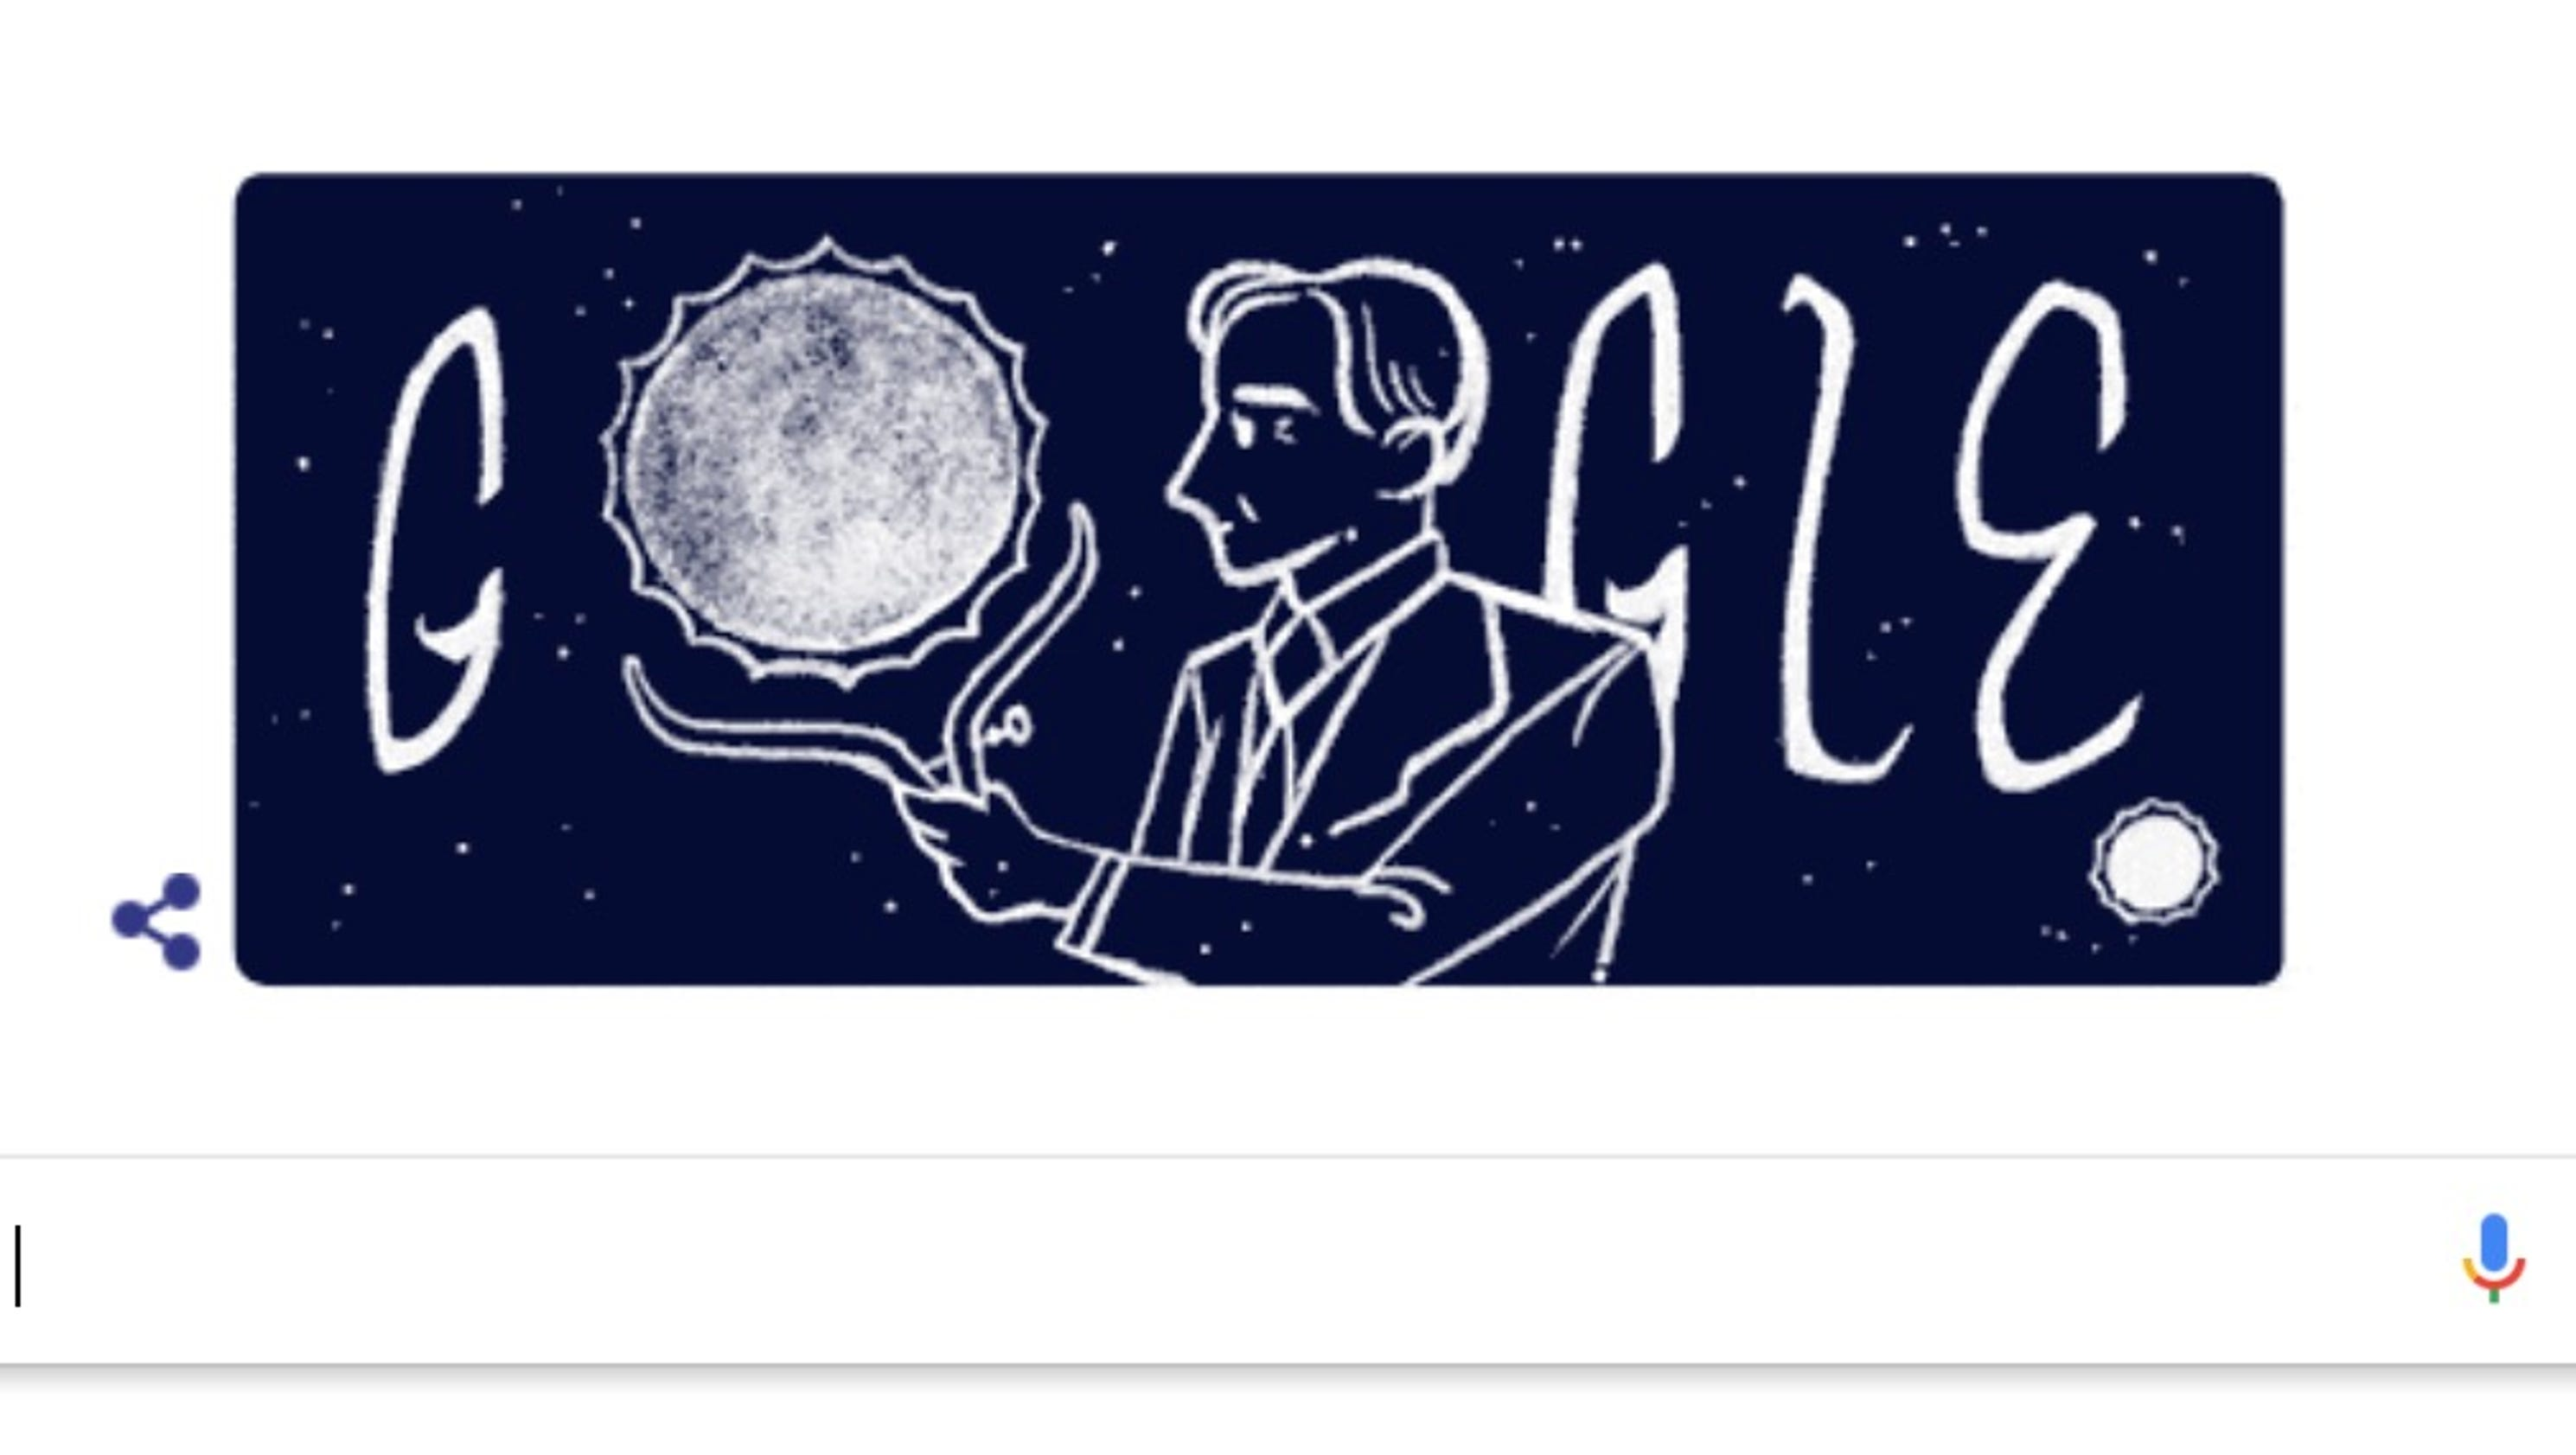 Dc5n United States It In English Created At 2017 10 20 0010 Rubikamp039s Snake Generation 2 Bestseller Isi 1 Pc Google Is Paying Tribute To The First Astrophysicist Win Nobel Prize On Thursday Revamped Its Logo Honor Subrahmanyan Chandrasekhar